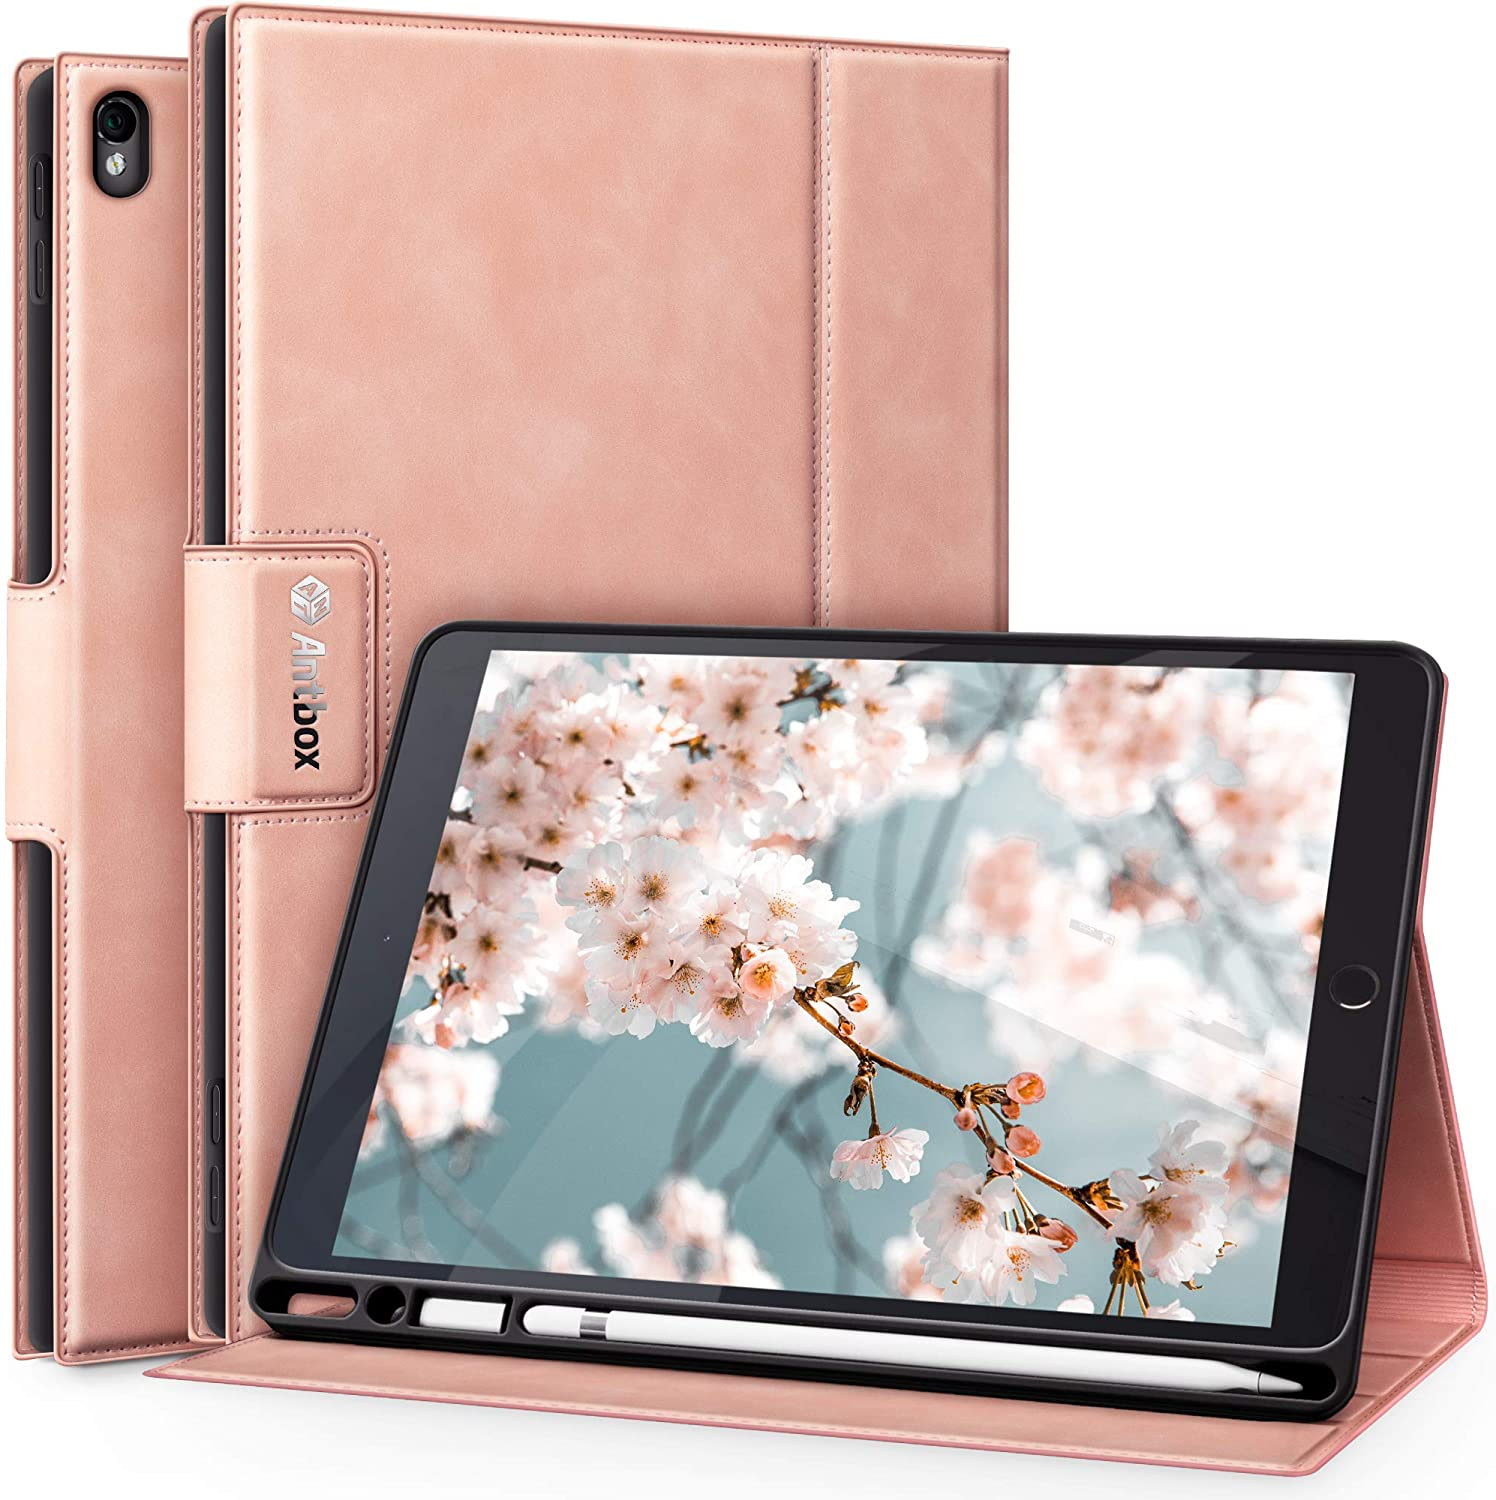 Antbox iPad Air (3rd Gen) 10.5